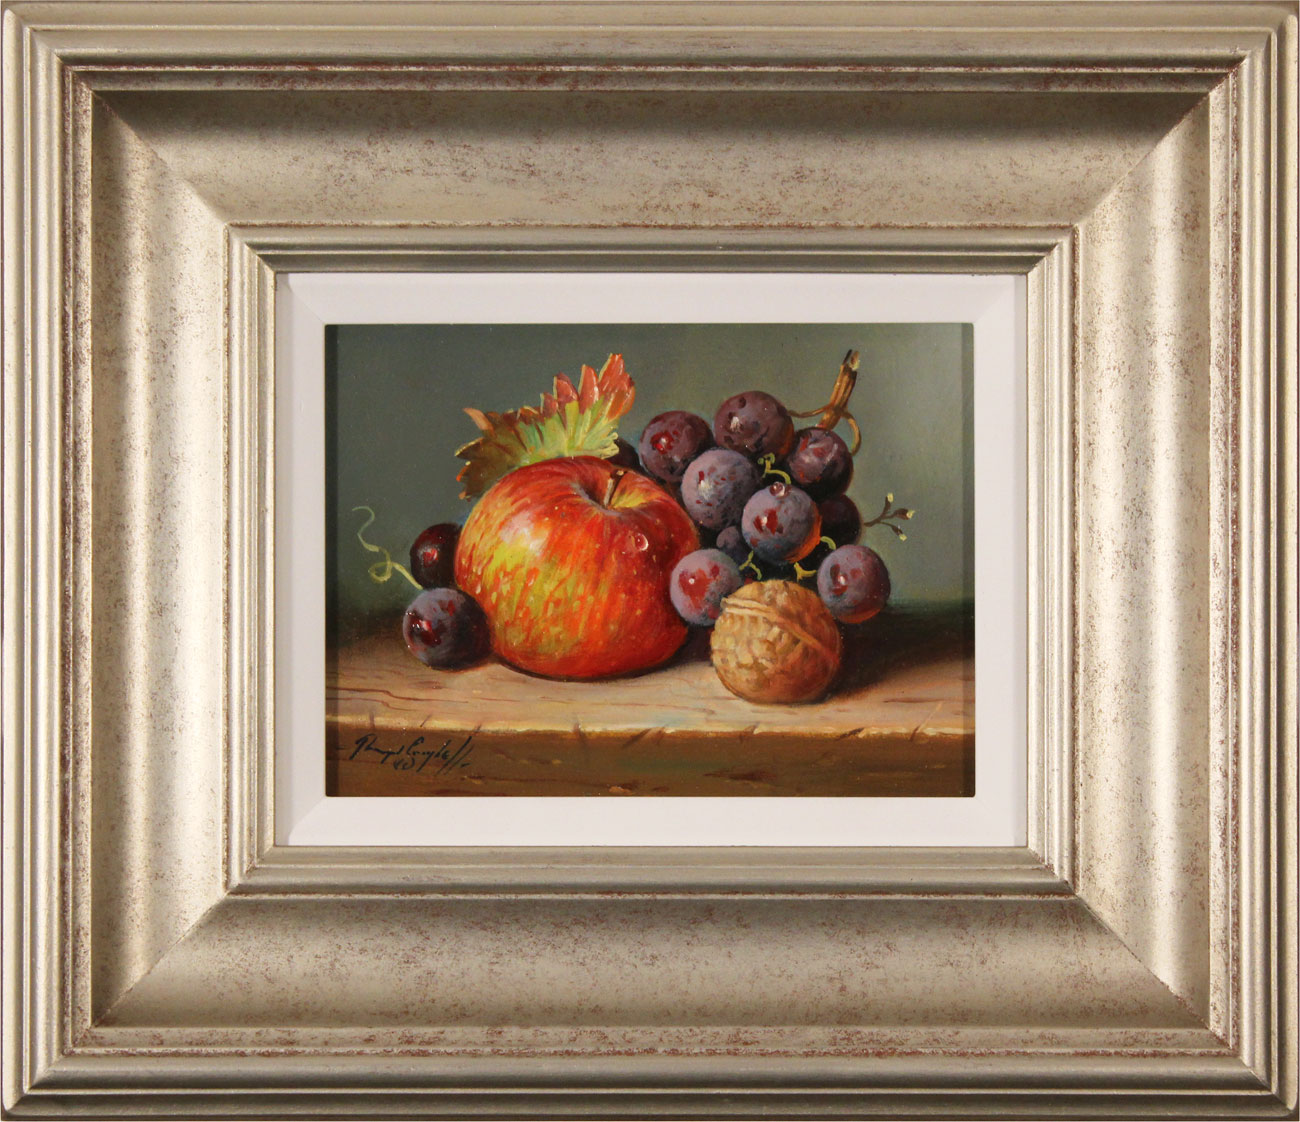 Raymond Campbell, Original oil painting on panel, Apple, Walnut and Grapes. Click to enlarge